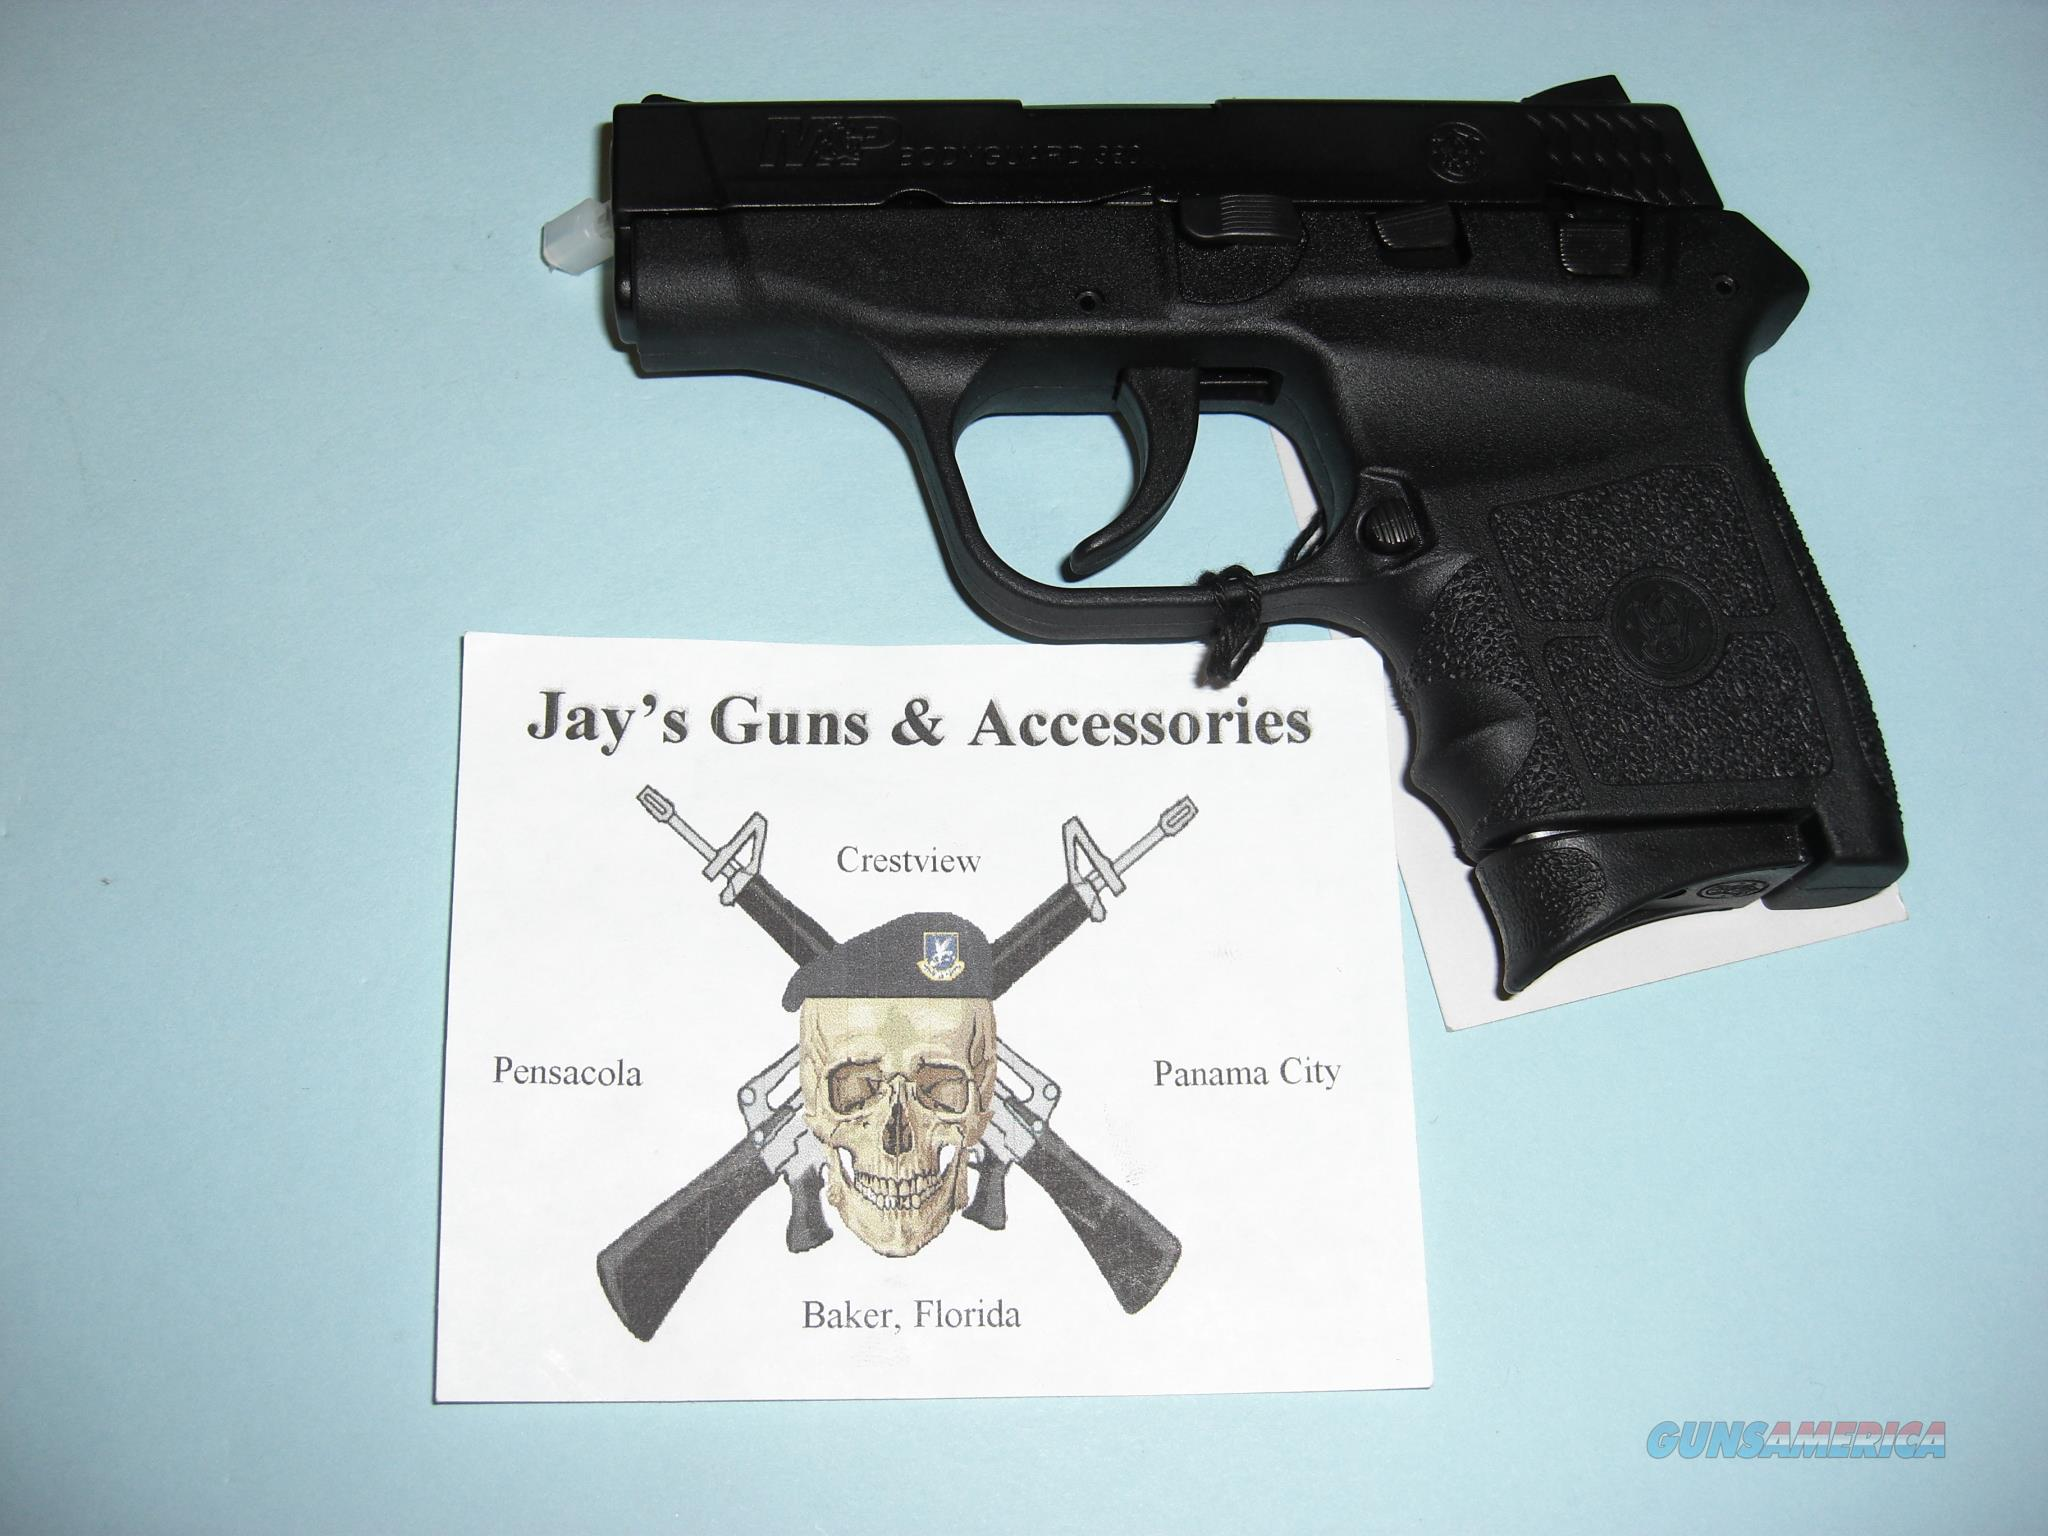 Smith & Wesson M&P Bodyguard 380 (109381)  Guns > Pistols > Smith & Wesson Pistols - Autos > Polymer Frame